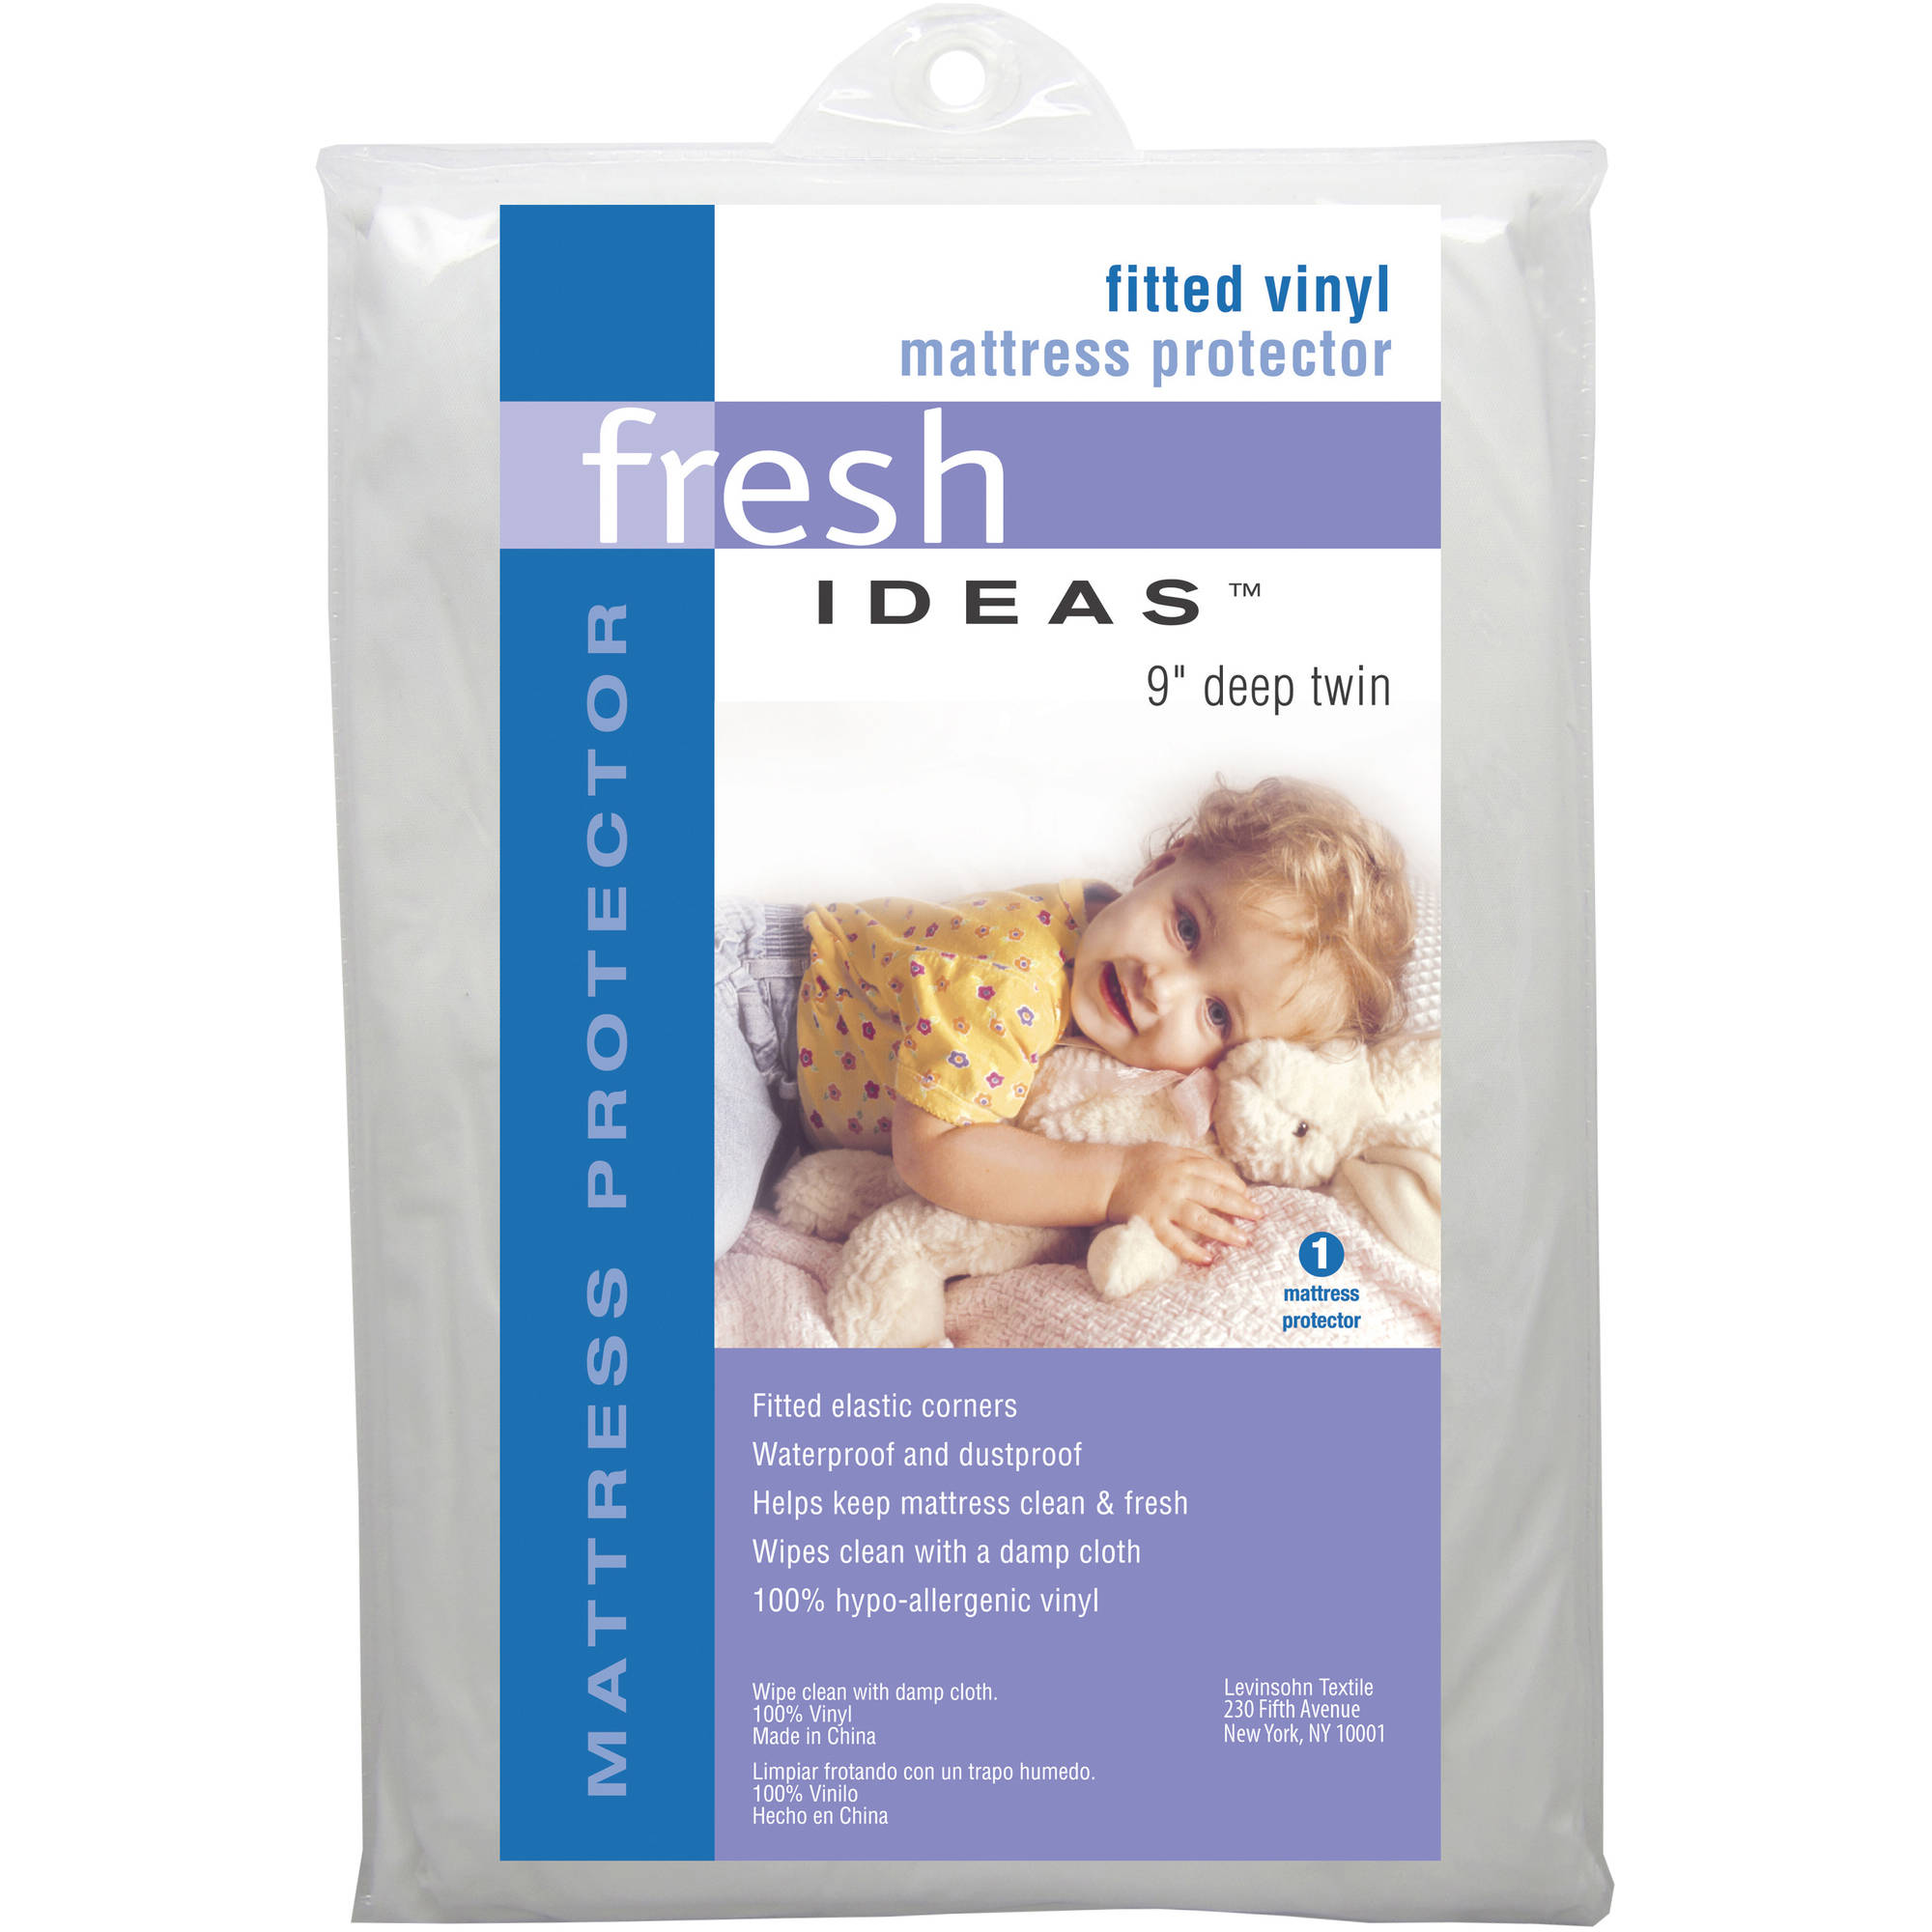 Click here to buy Fresh Ideas Fitted Vinyl Mattress Protector by Levinsohn Textile Company.